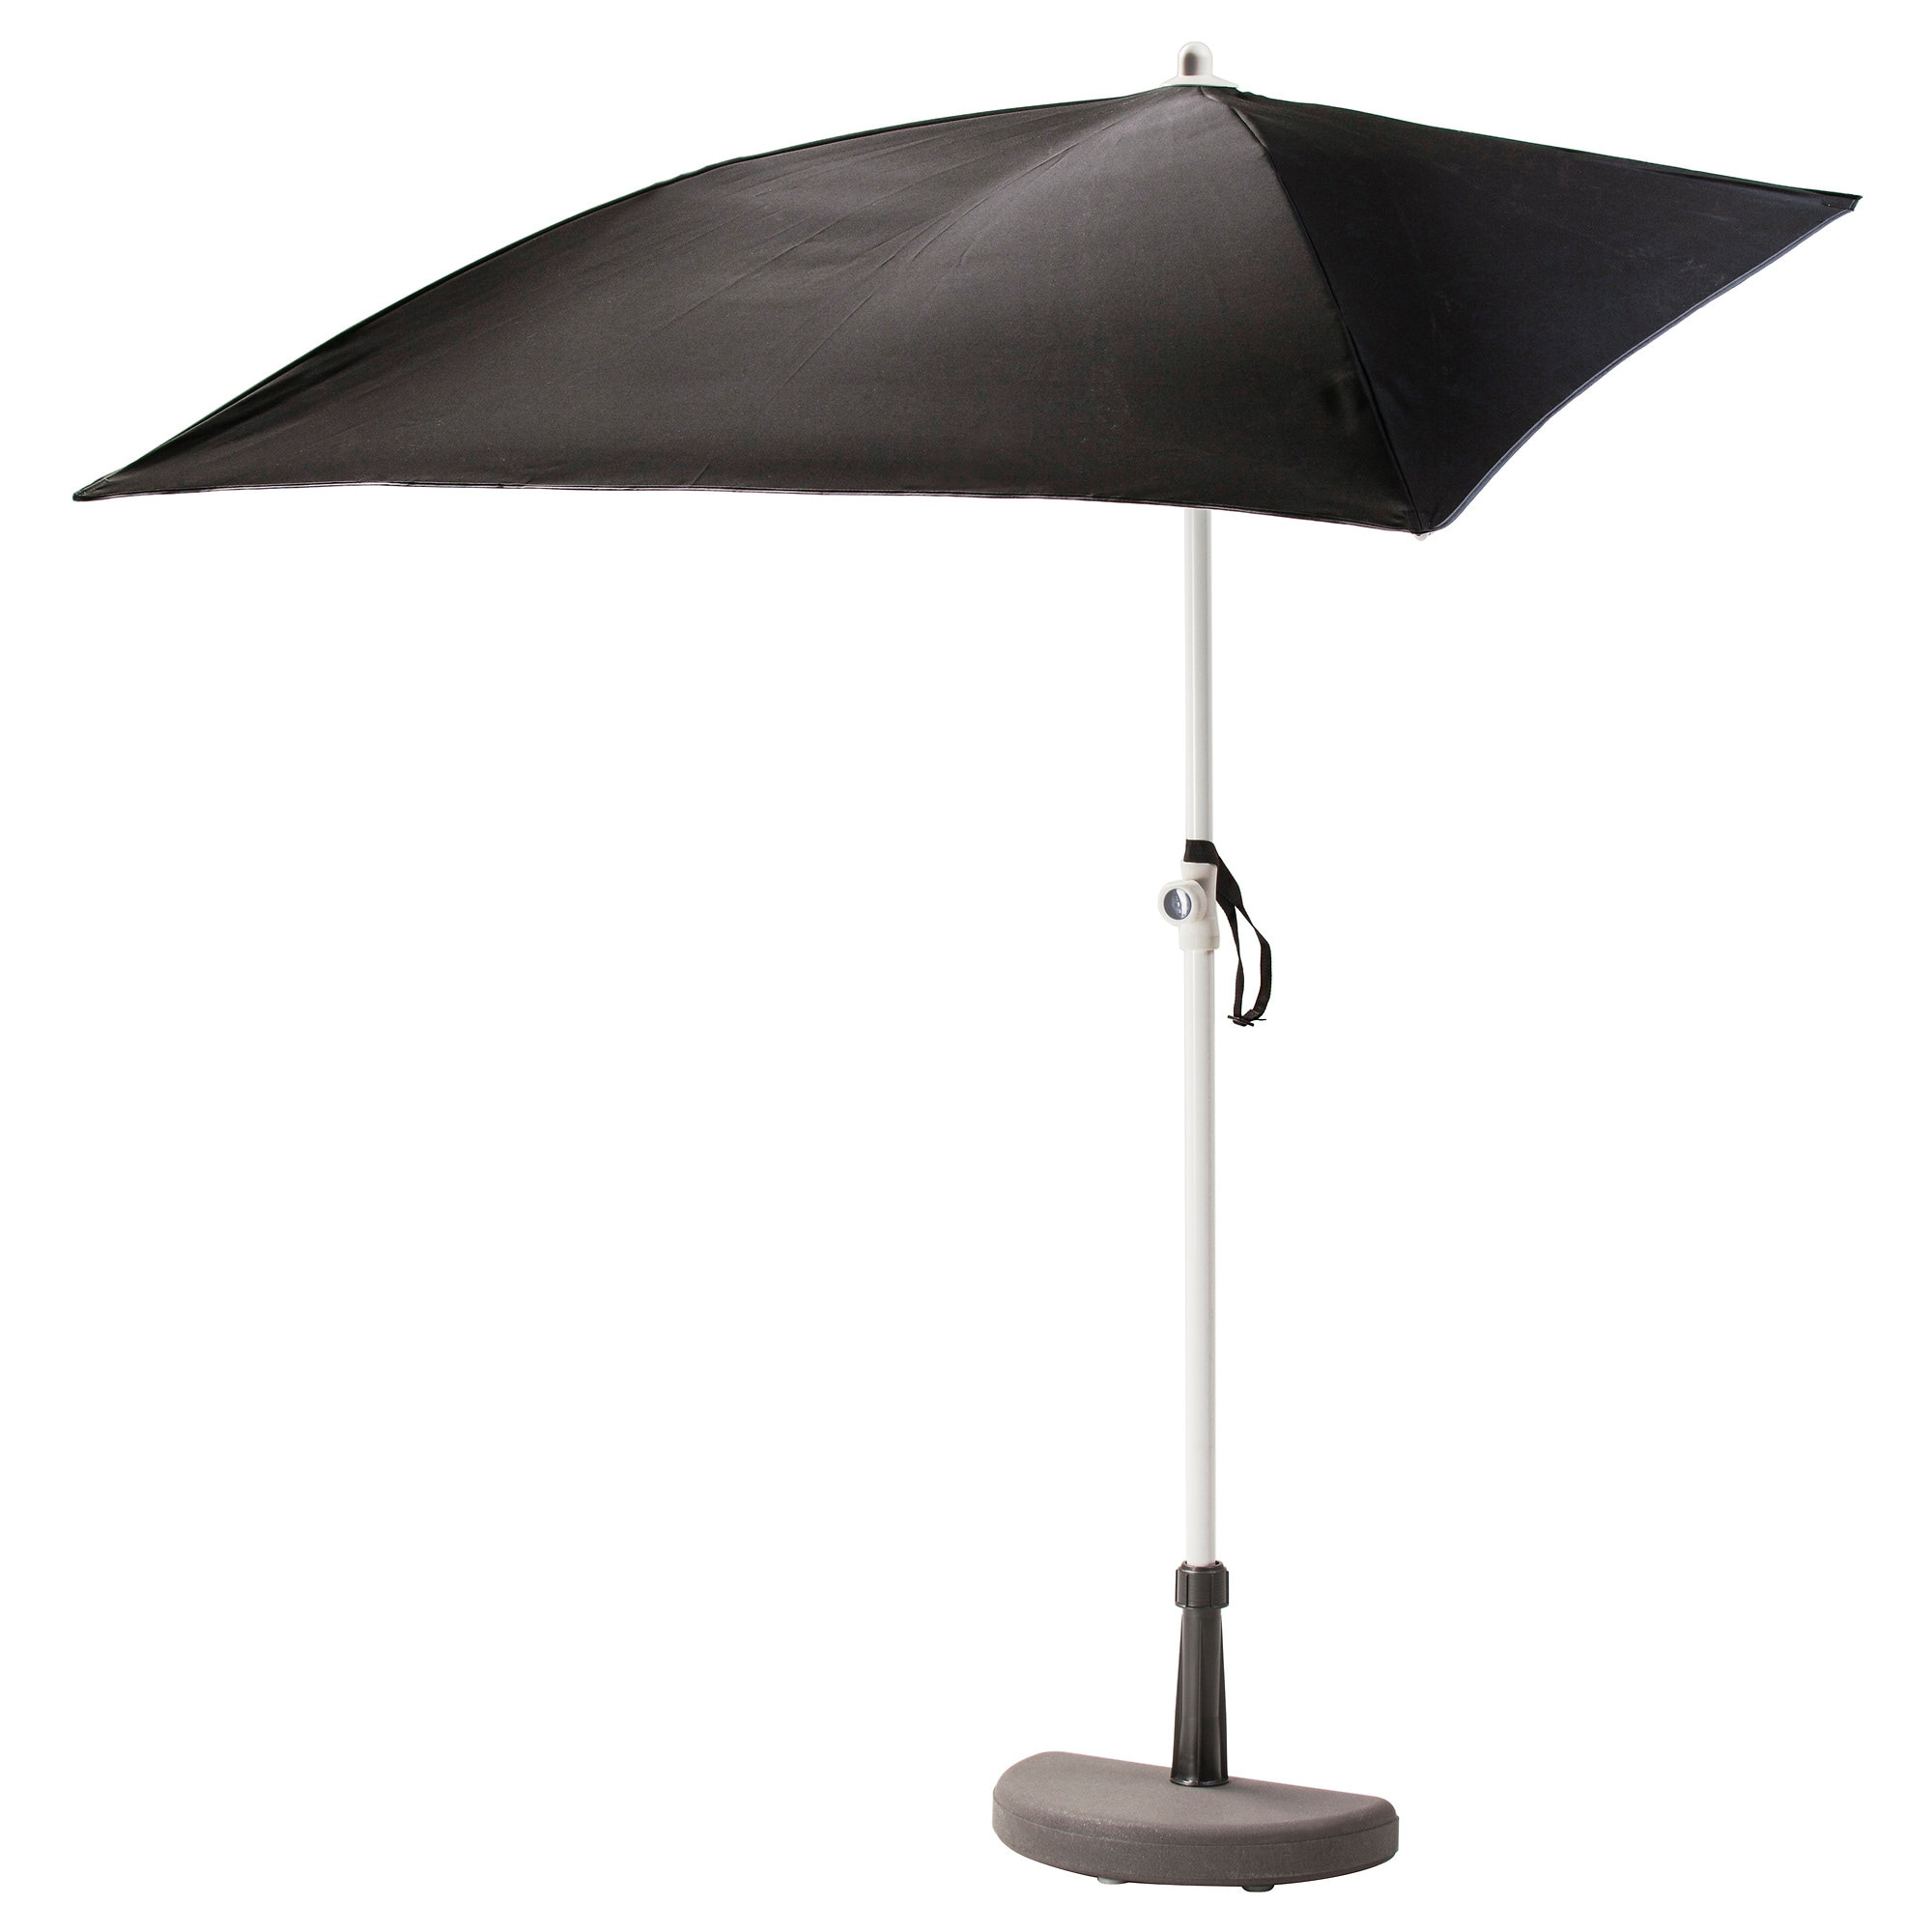 Outdoor umbrellas & bases IKEA